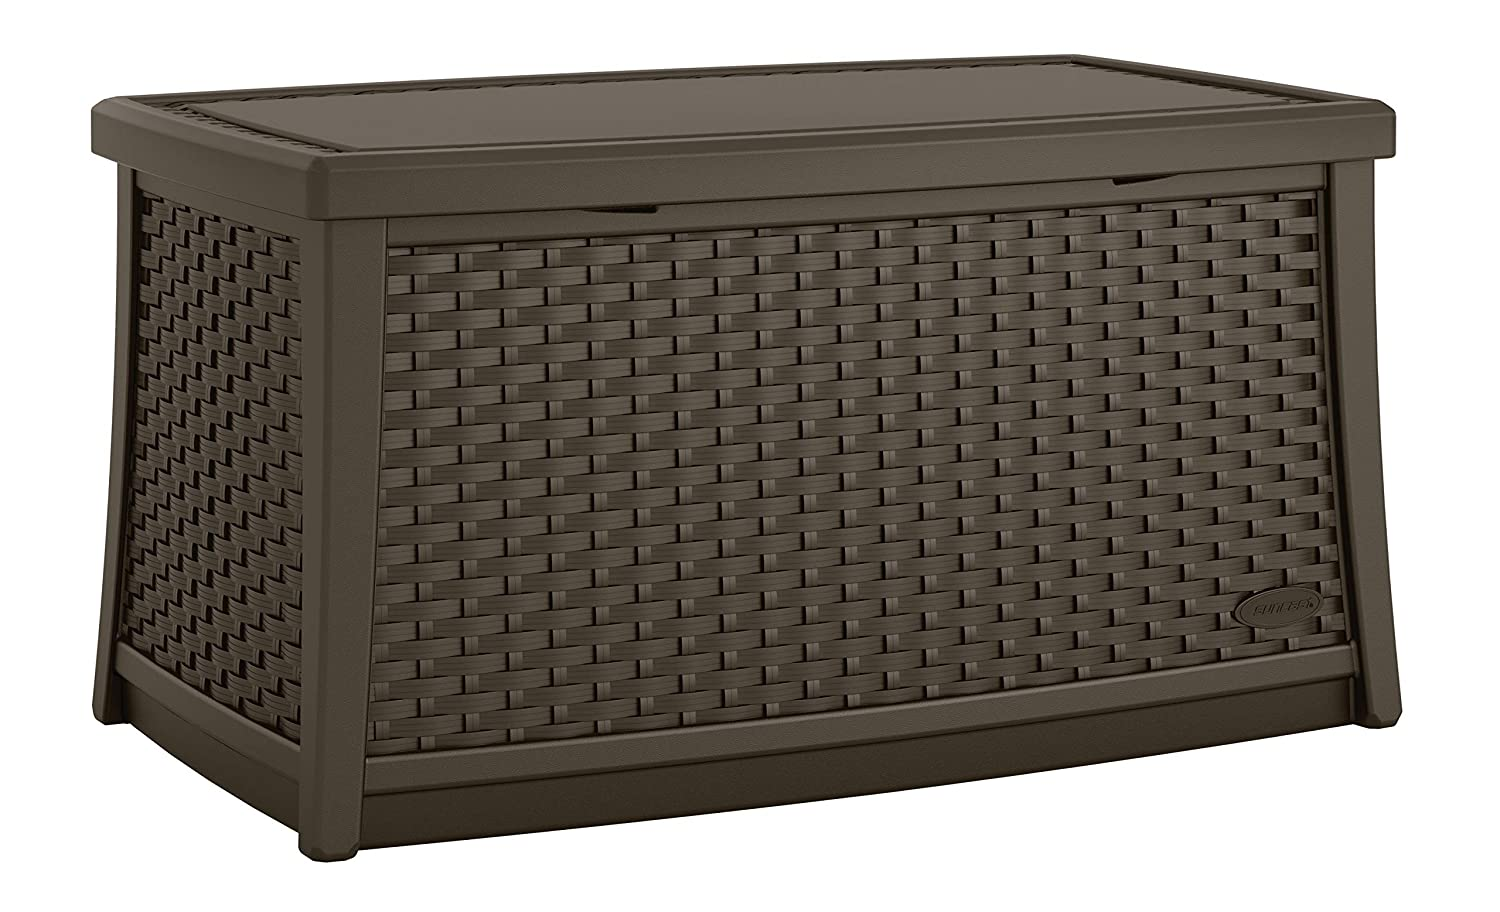 Suncast Elements Coffee Table with Storage - All-Weather, Lightweight, Resin Constructed Patio Table for Storage of Patio Accessories - Outdoor Storage Box with 30 Gallon Capacity - Java